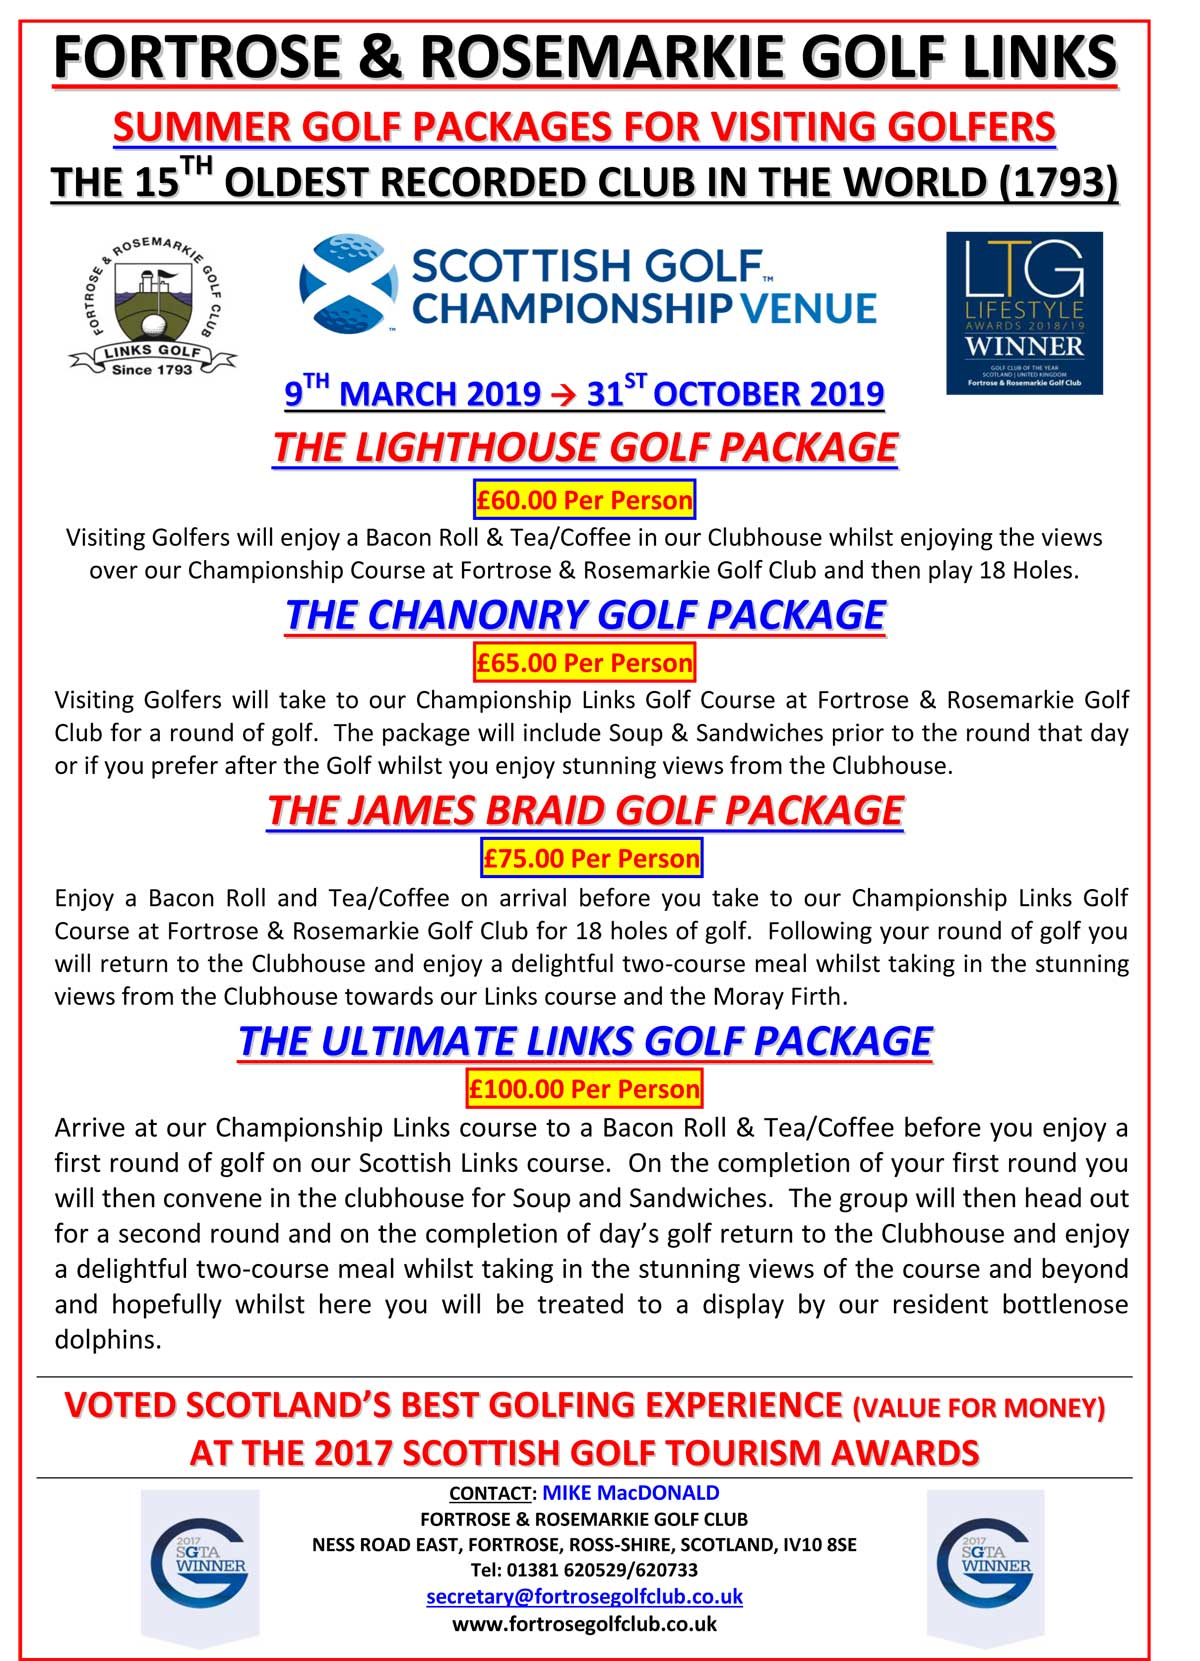 Fortrose & Rosemarkie Golf Packages - 2019